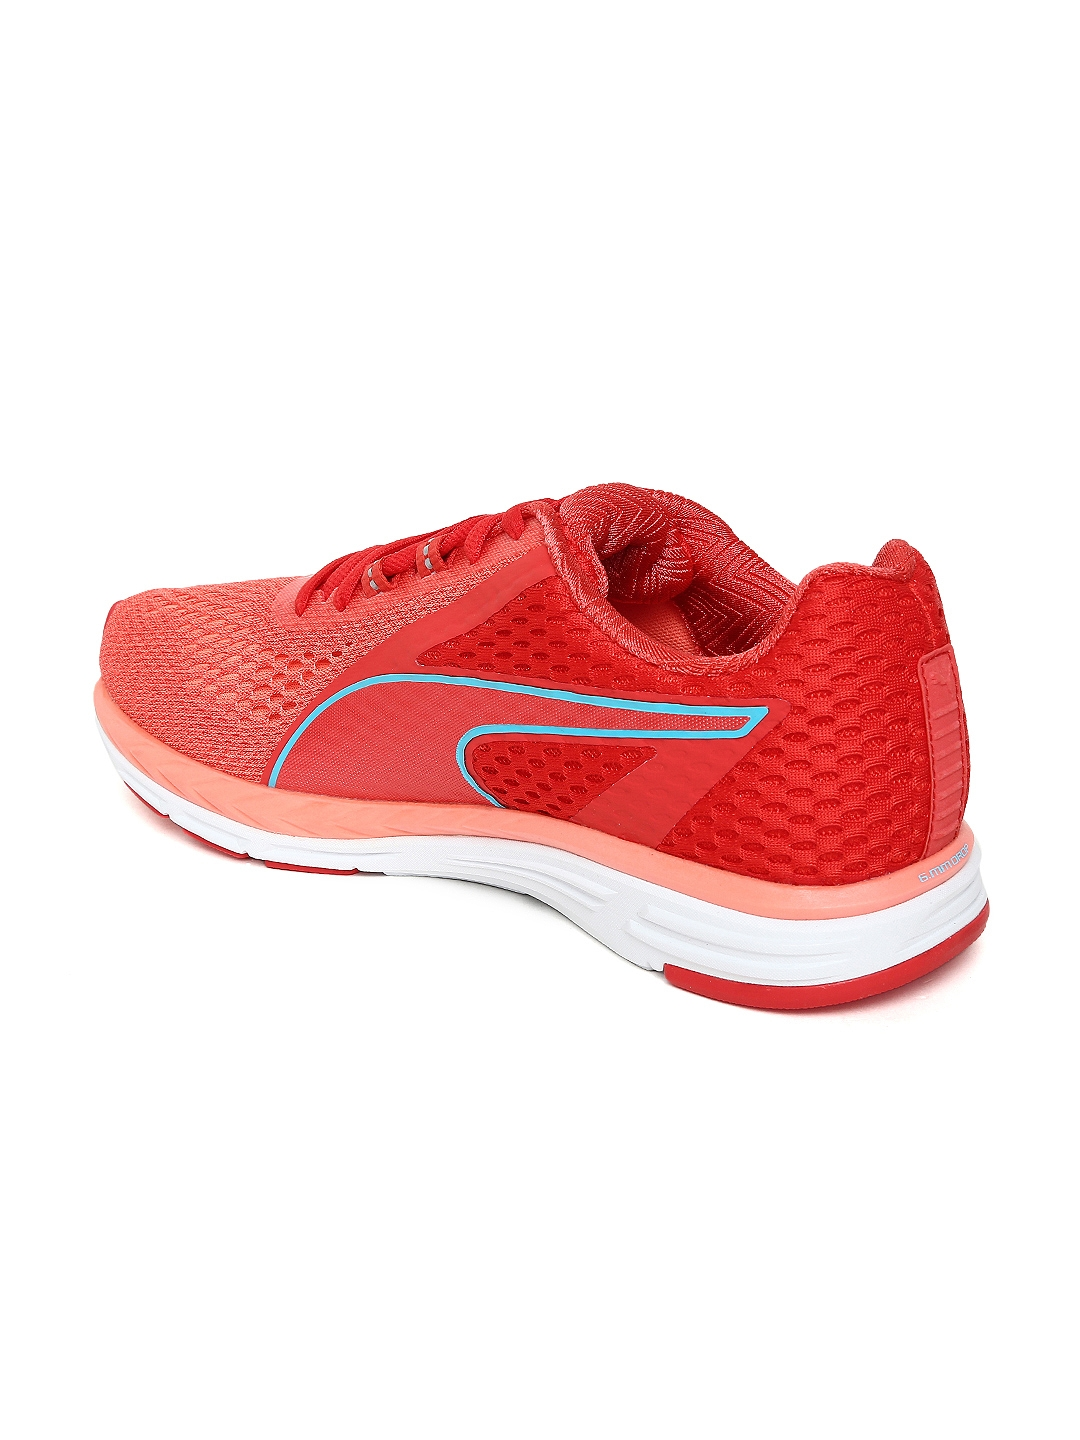 d7615d5b8e9 Buy Puma Women Red Speed 500 IGNITE 2 Running Shoes - Sports Shoes ...